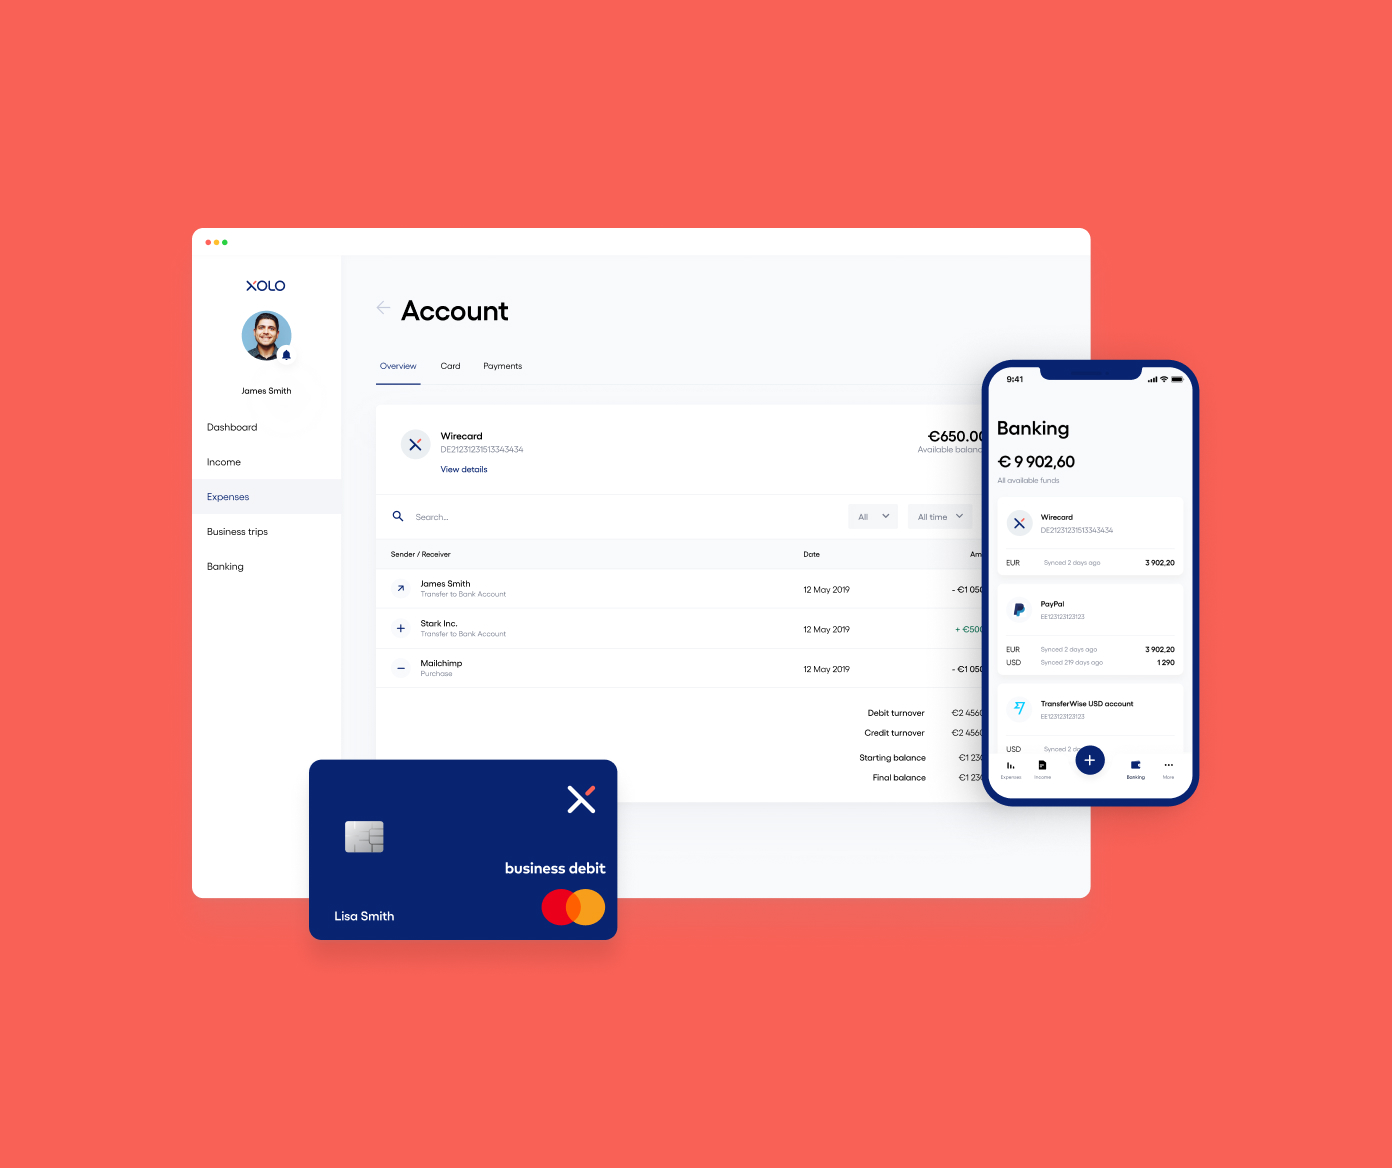 Image of online banking